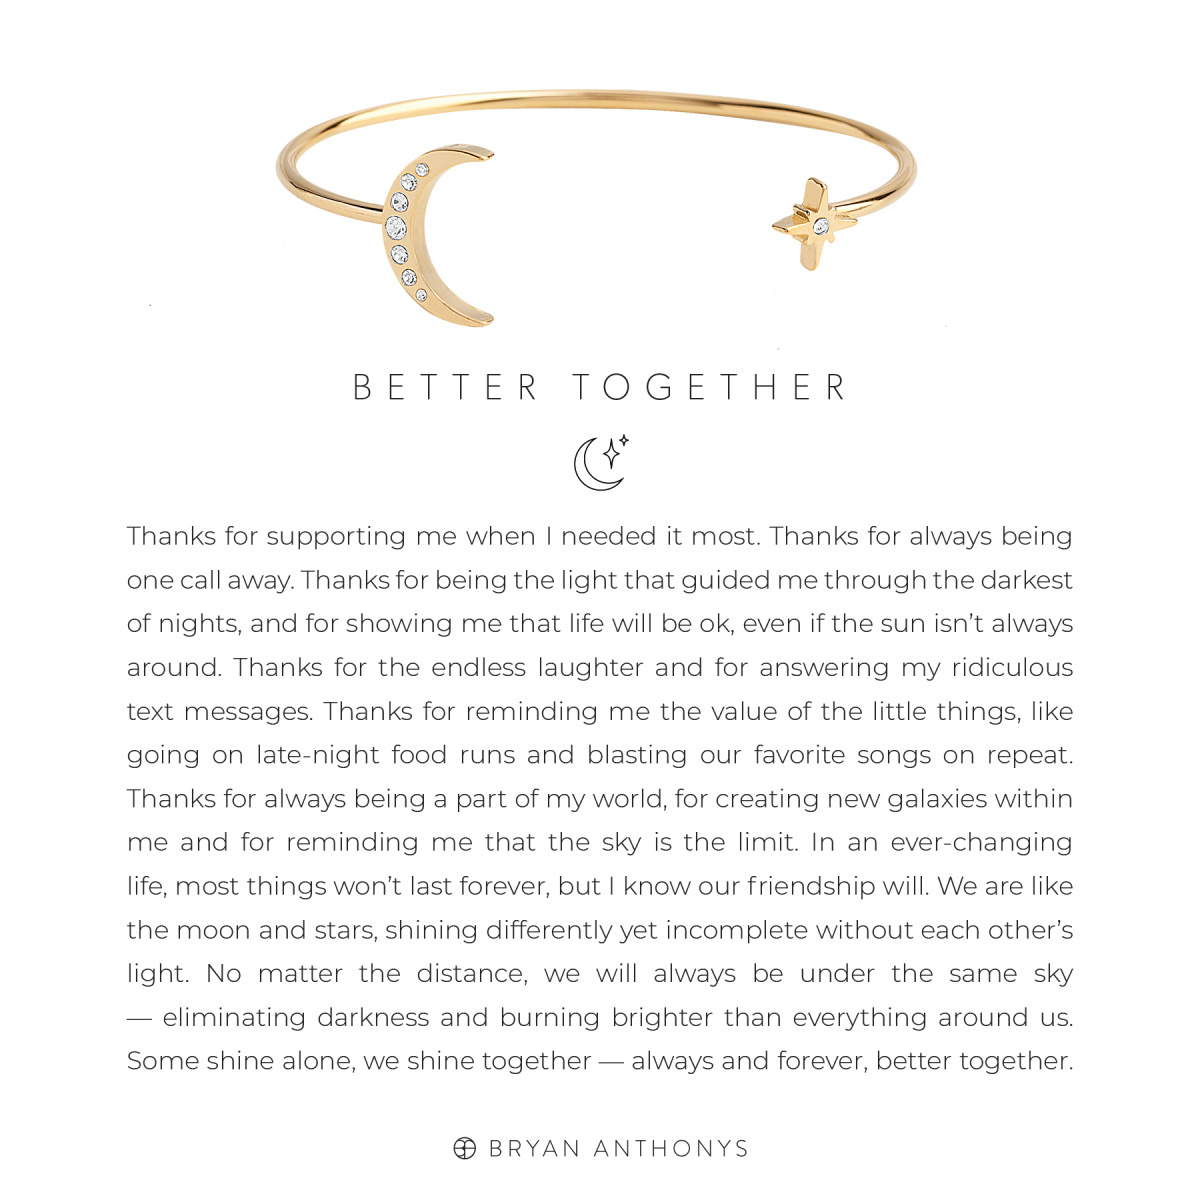 Bryan Anthonys Bryan Anthonys Better Together Cuff